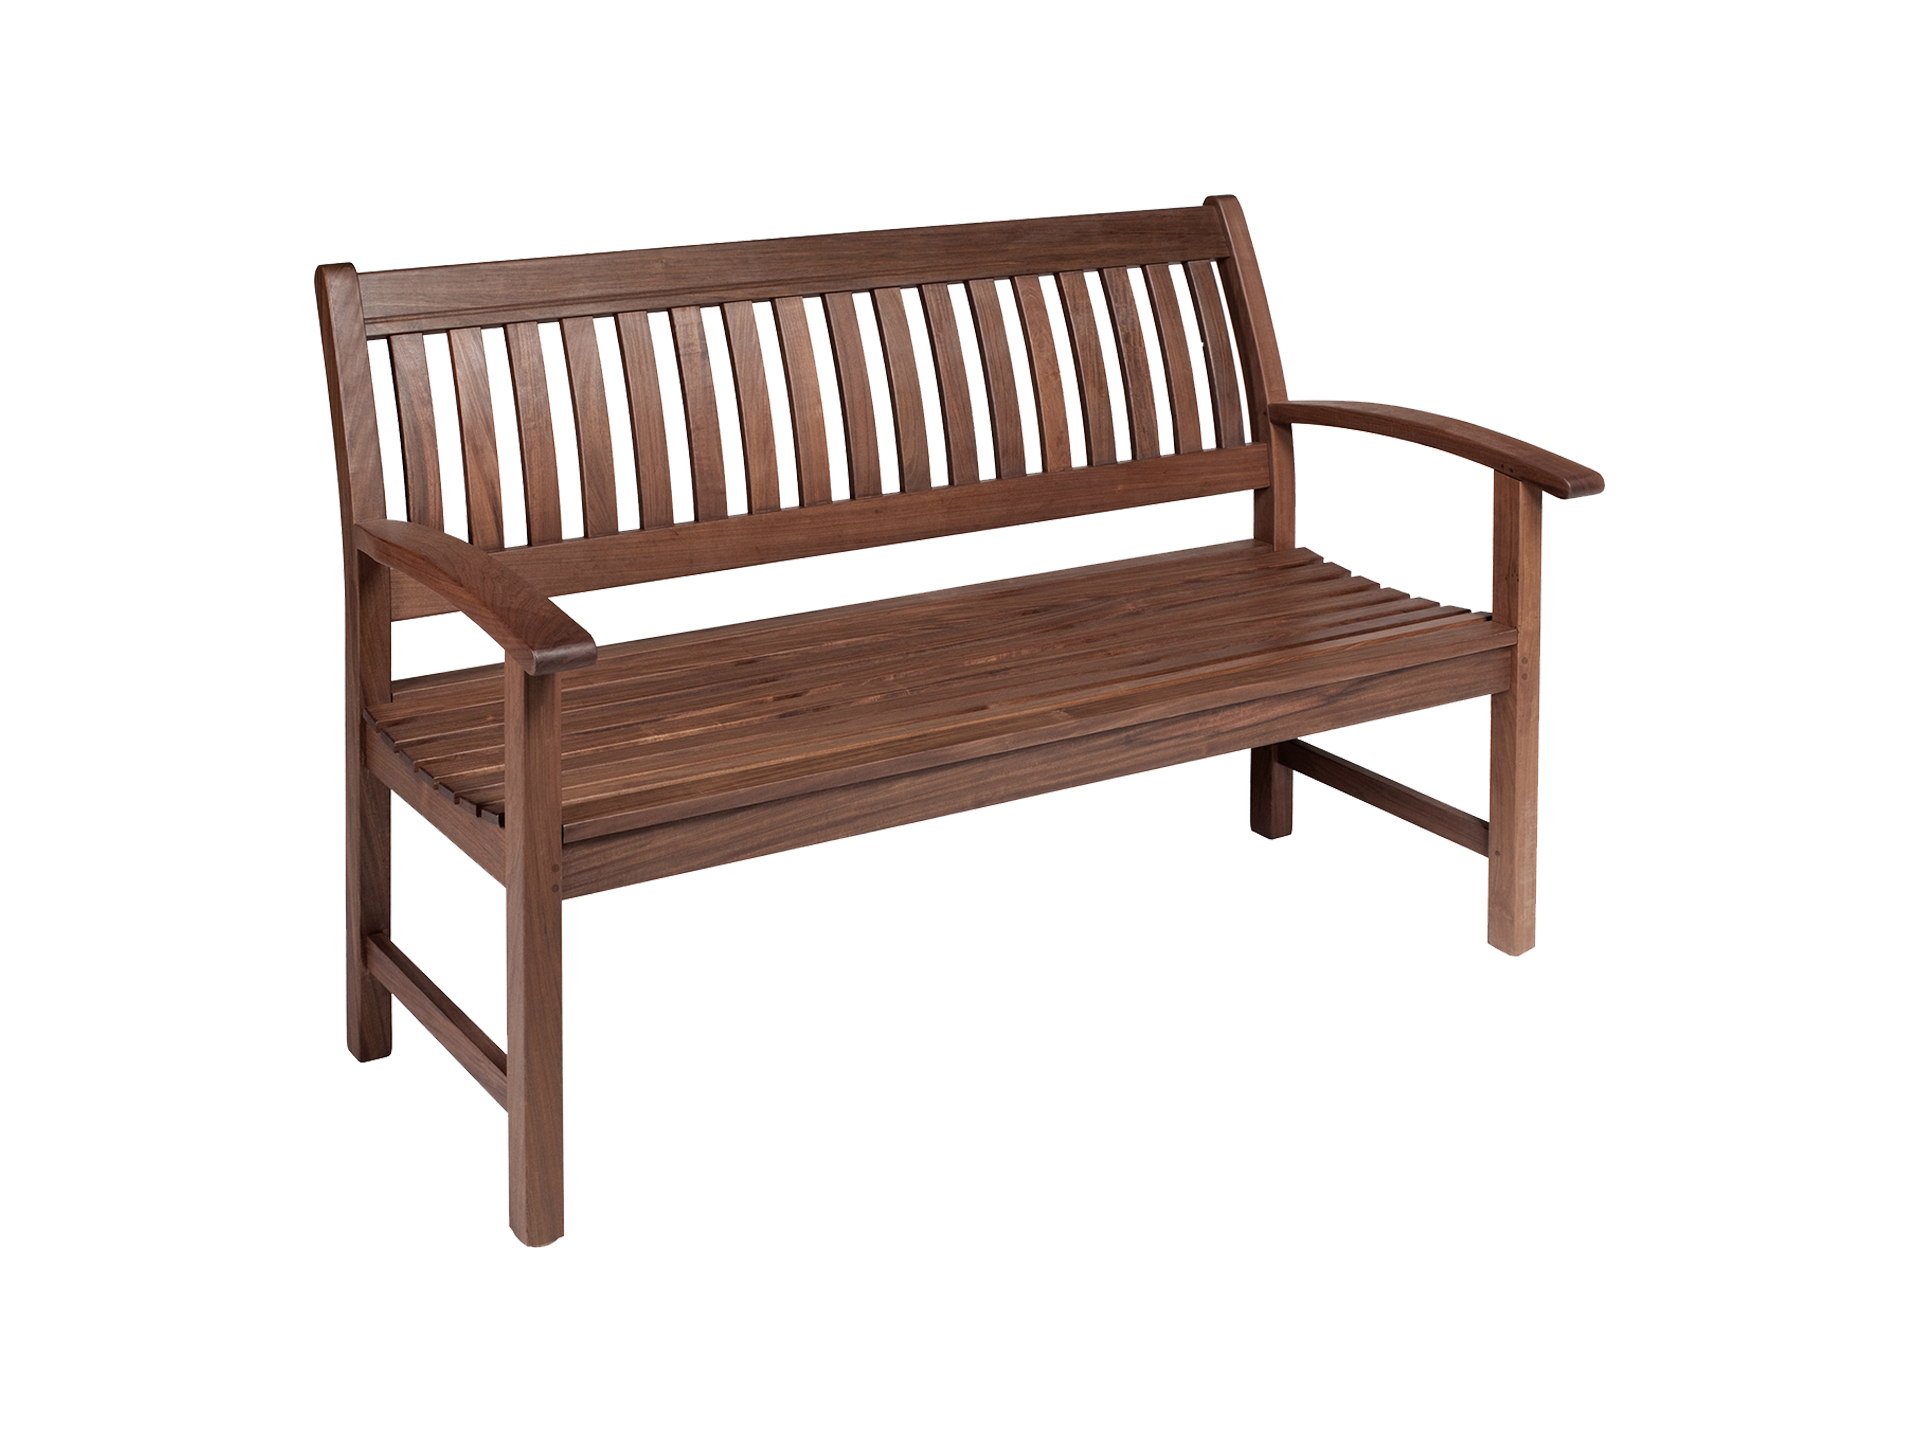 Outdoor bench png. Garden jensen leisure furniture